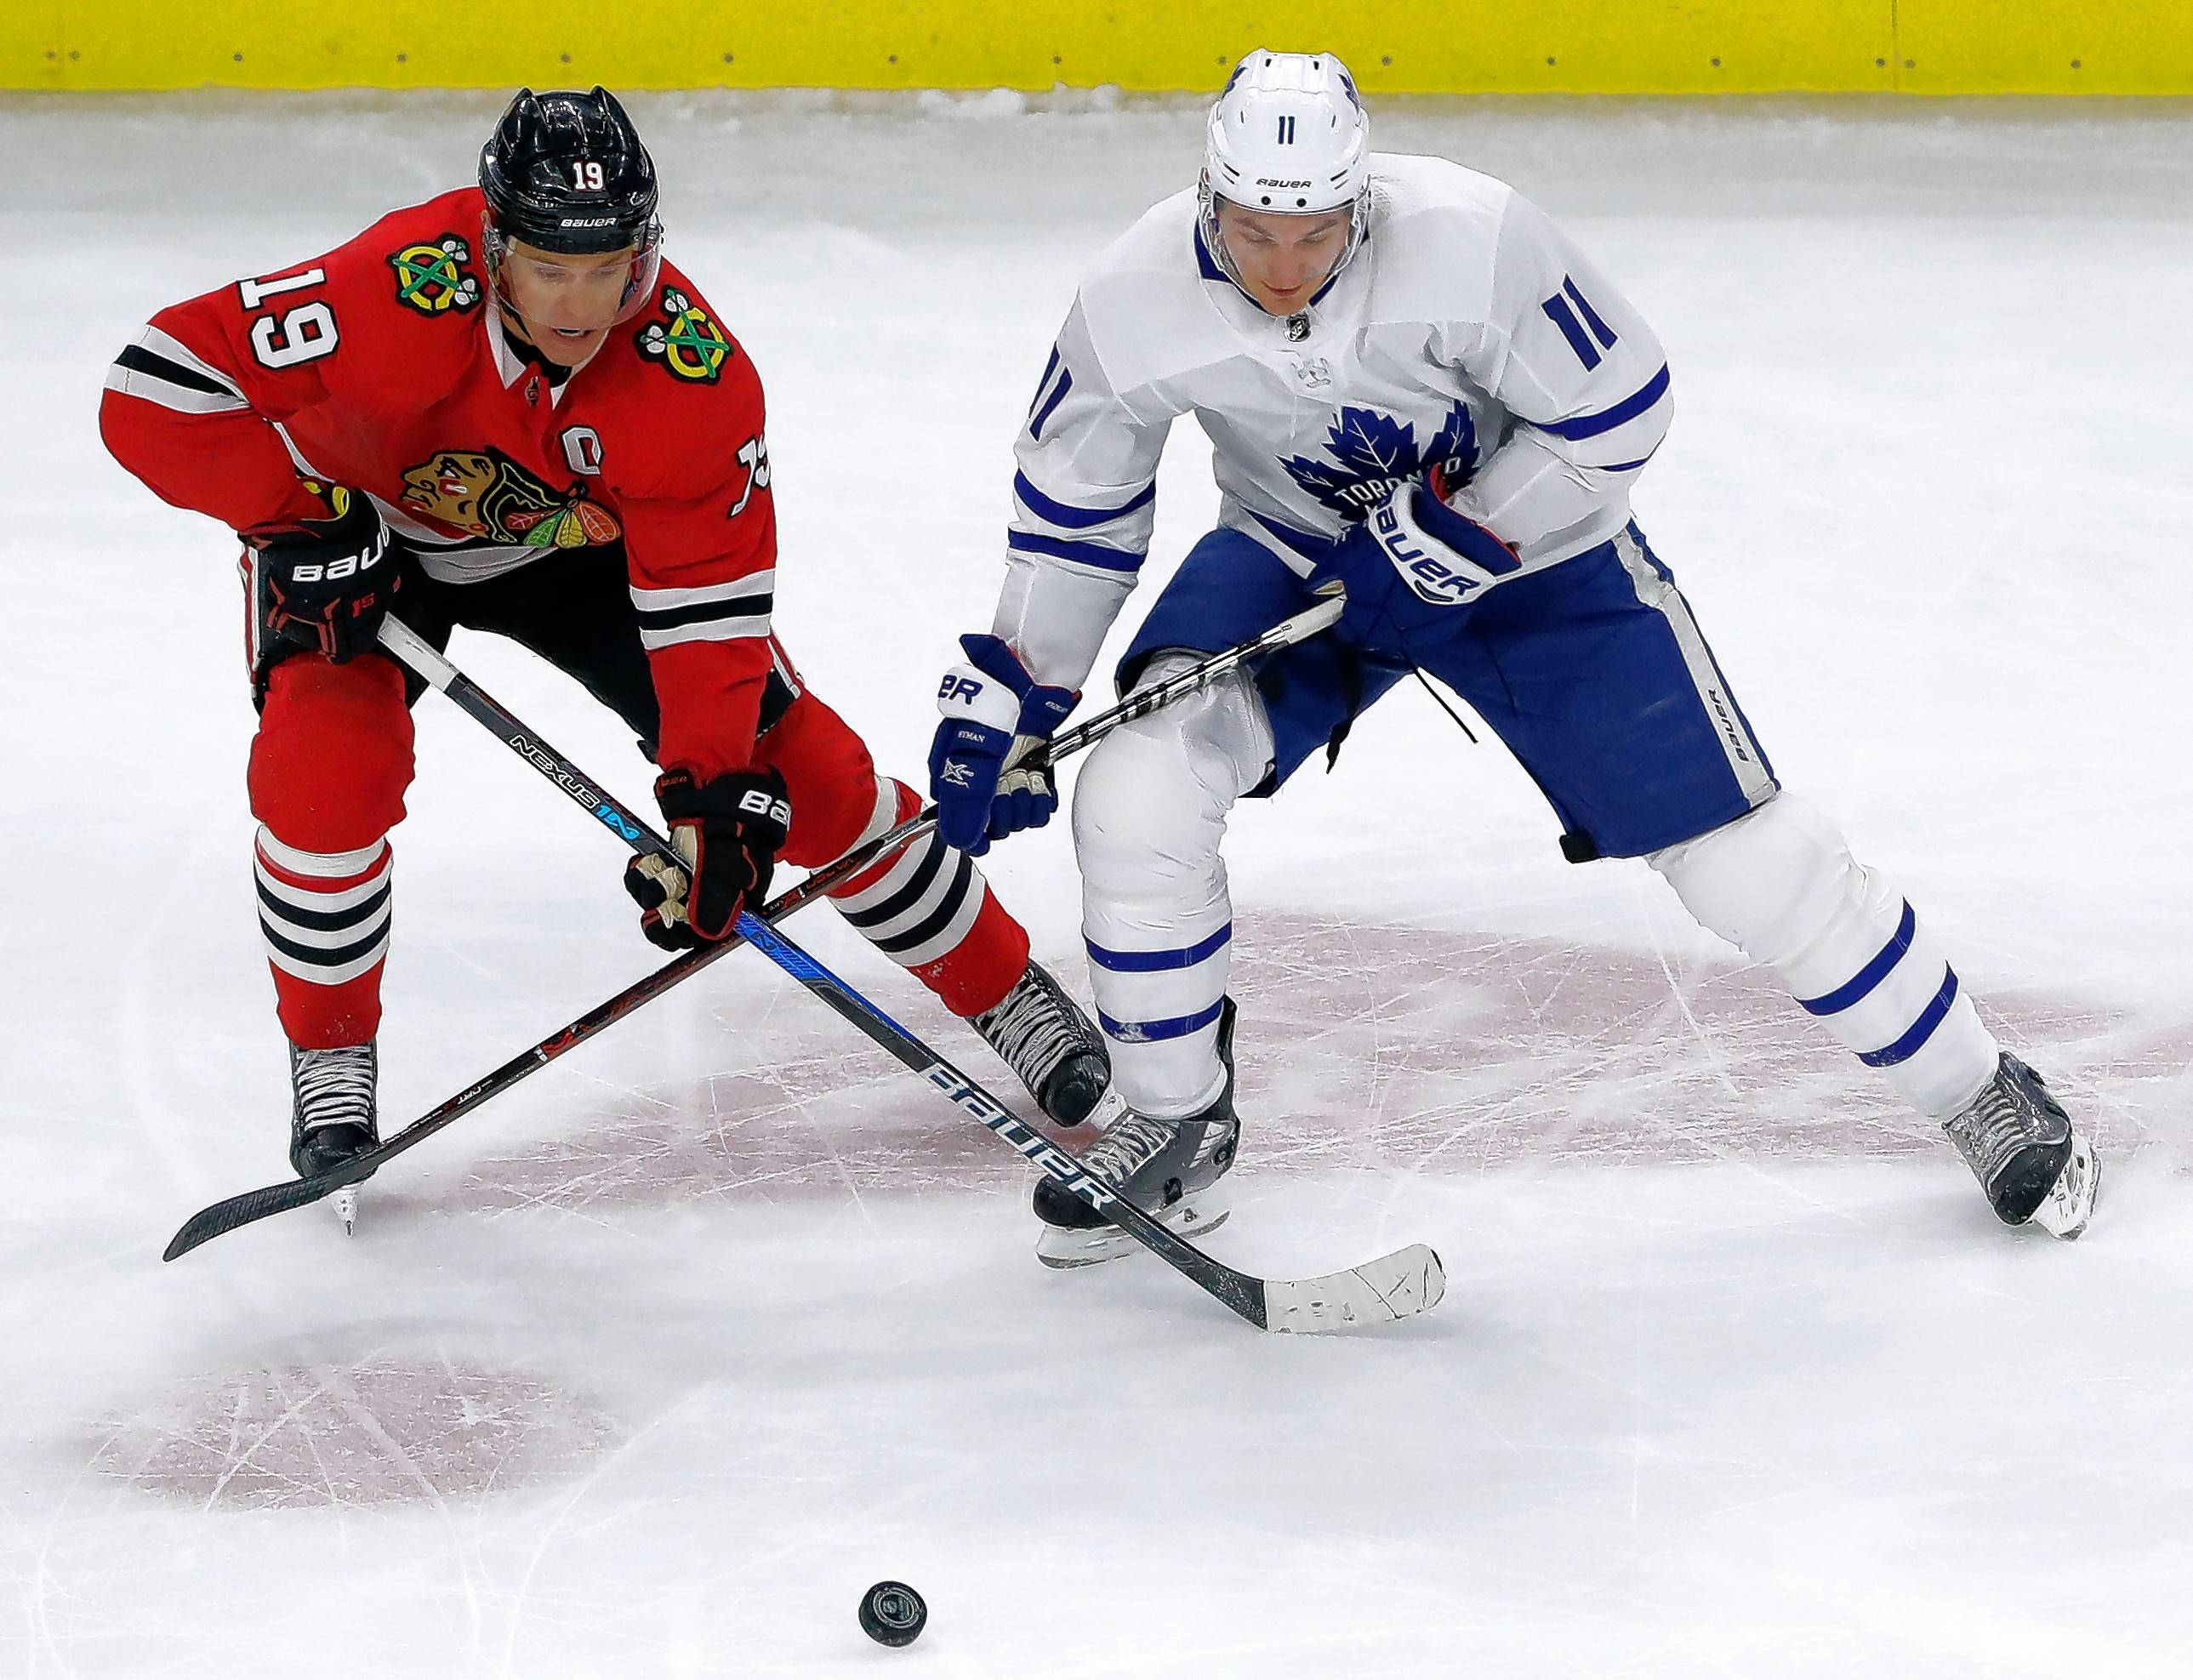 The Chicago Blackhawks and captain Jonathan Toews will host their NHL home opener against Toronto on Oct. 7 at the United Center. Toronto totaled 105 points last season but lost a first-round playoff series to Boston, 4-3.